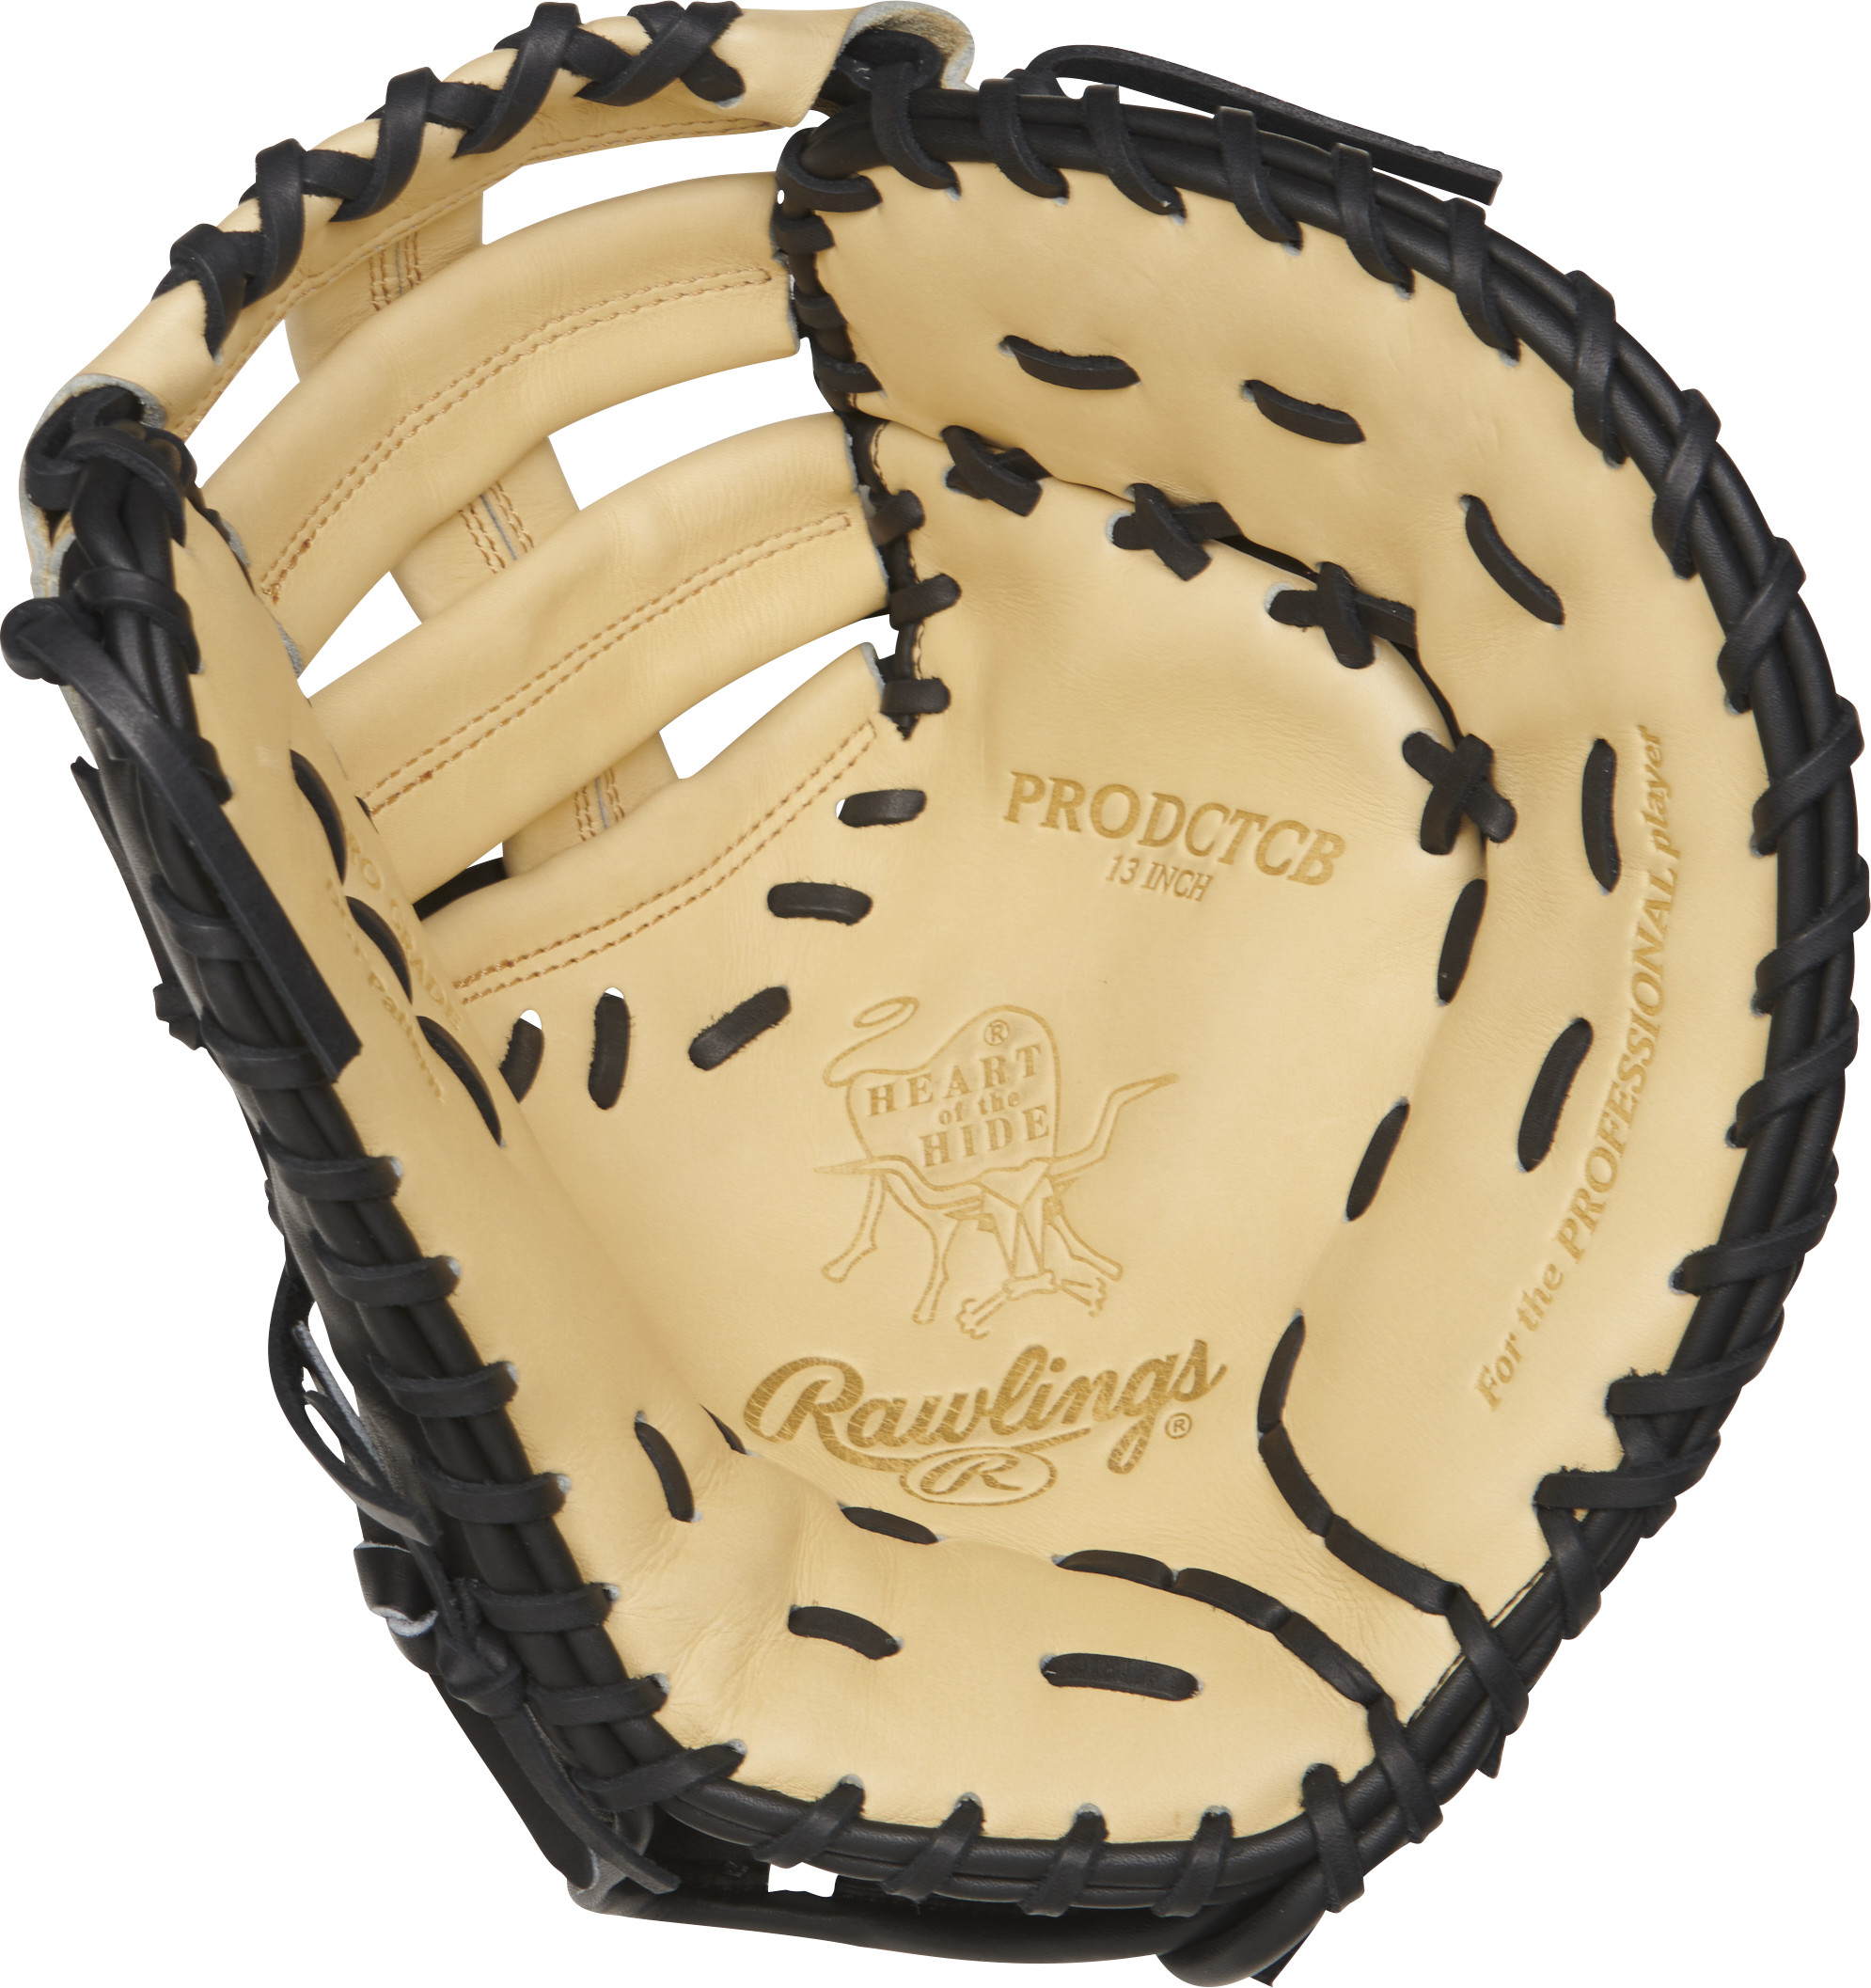 http://www.bestbatdeals.com/images/gloves/rawlings/PRODCTCB-1.jpg